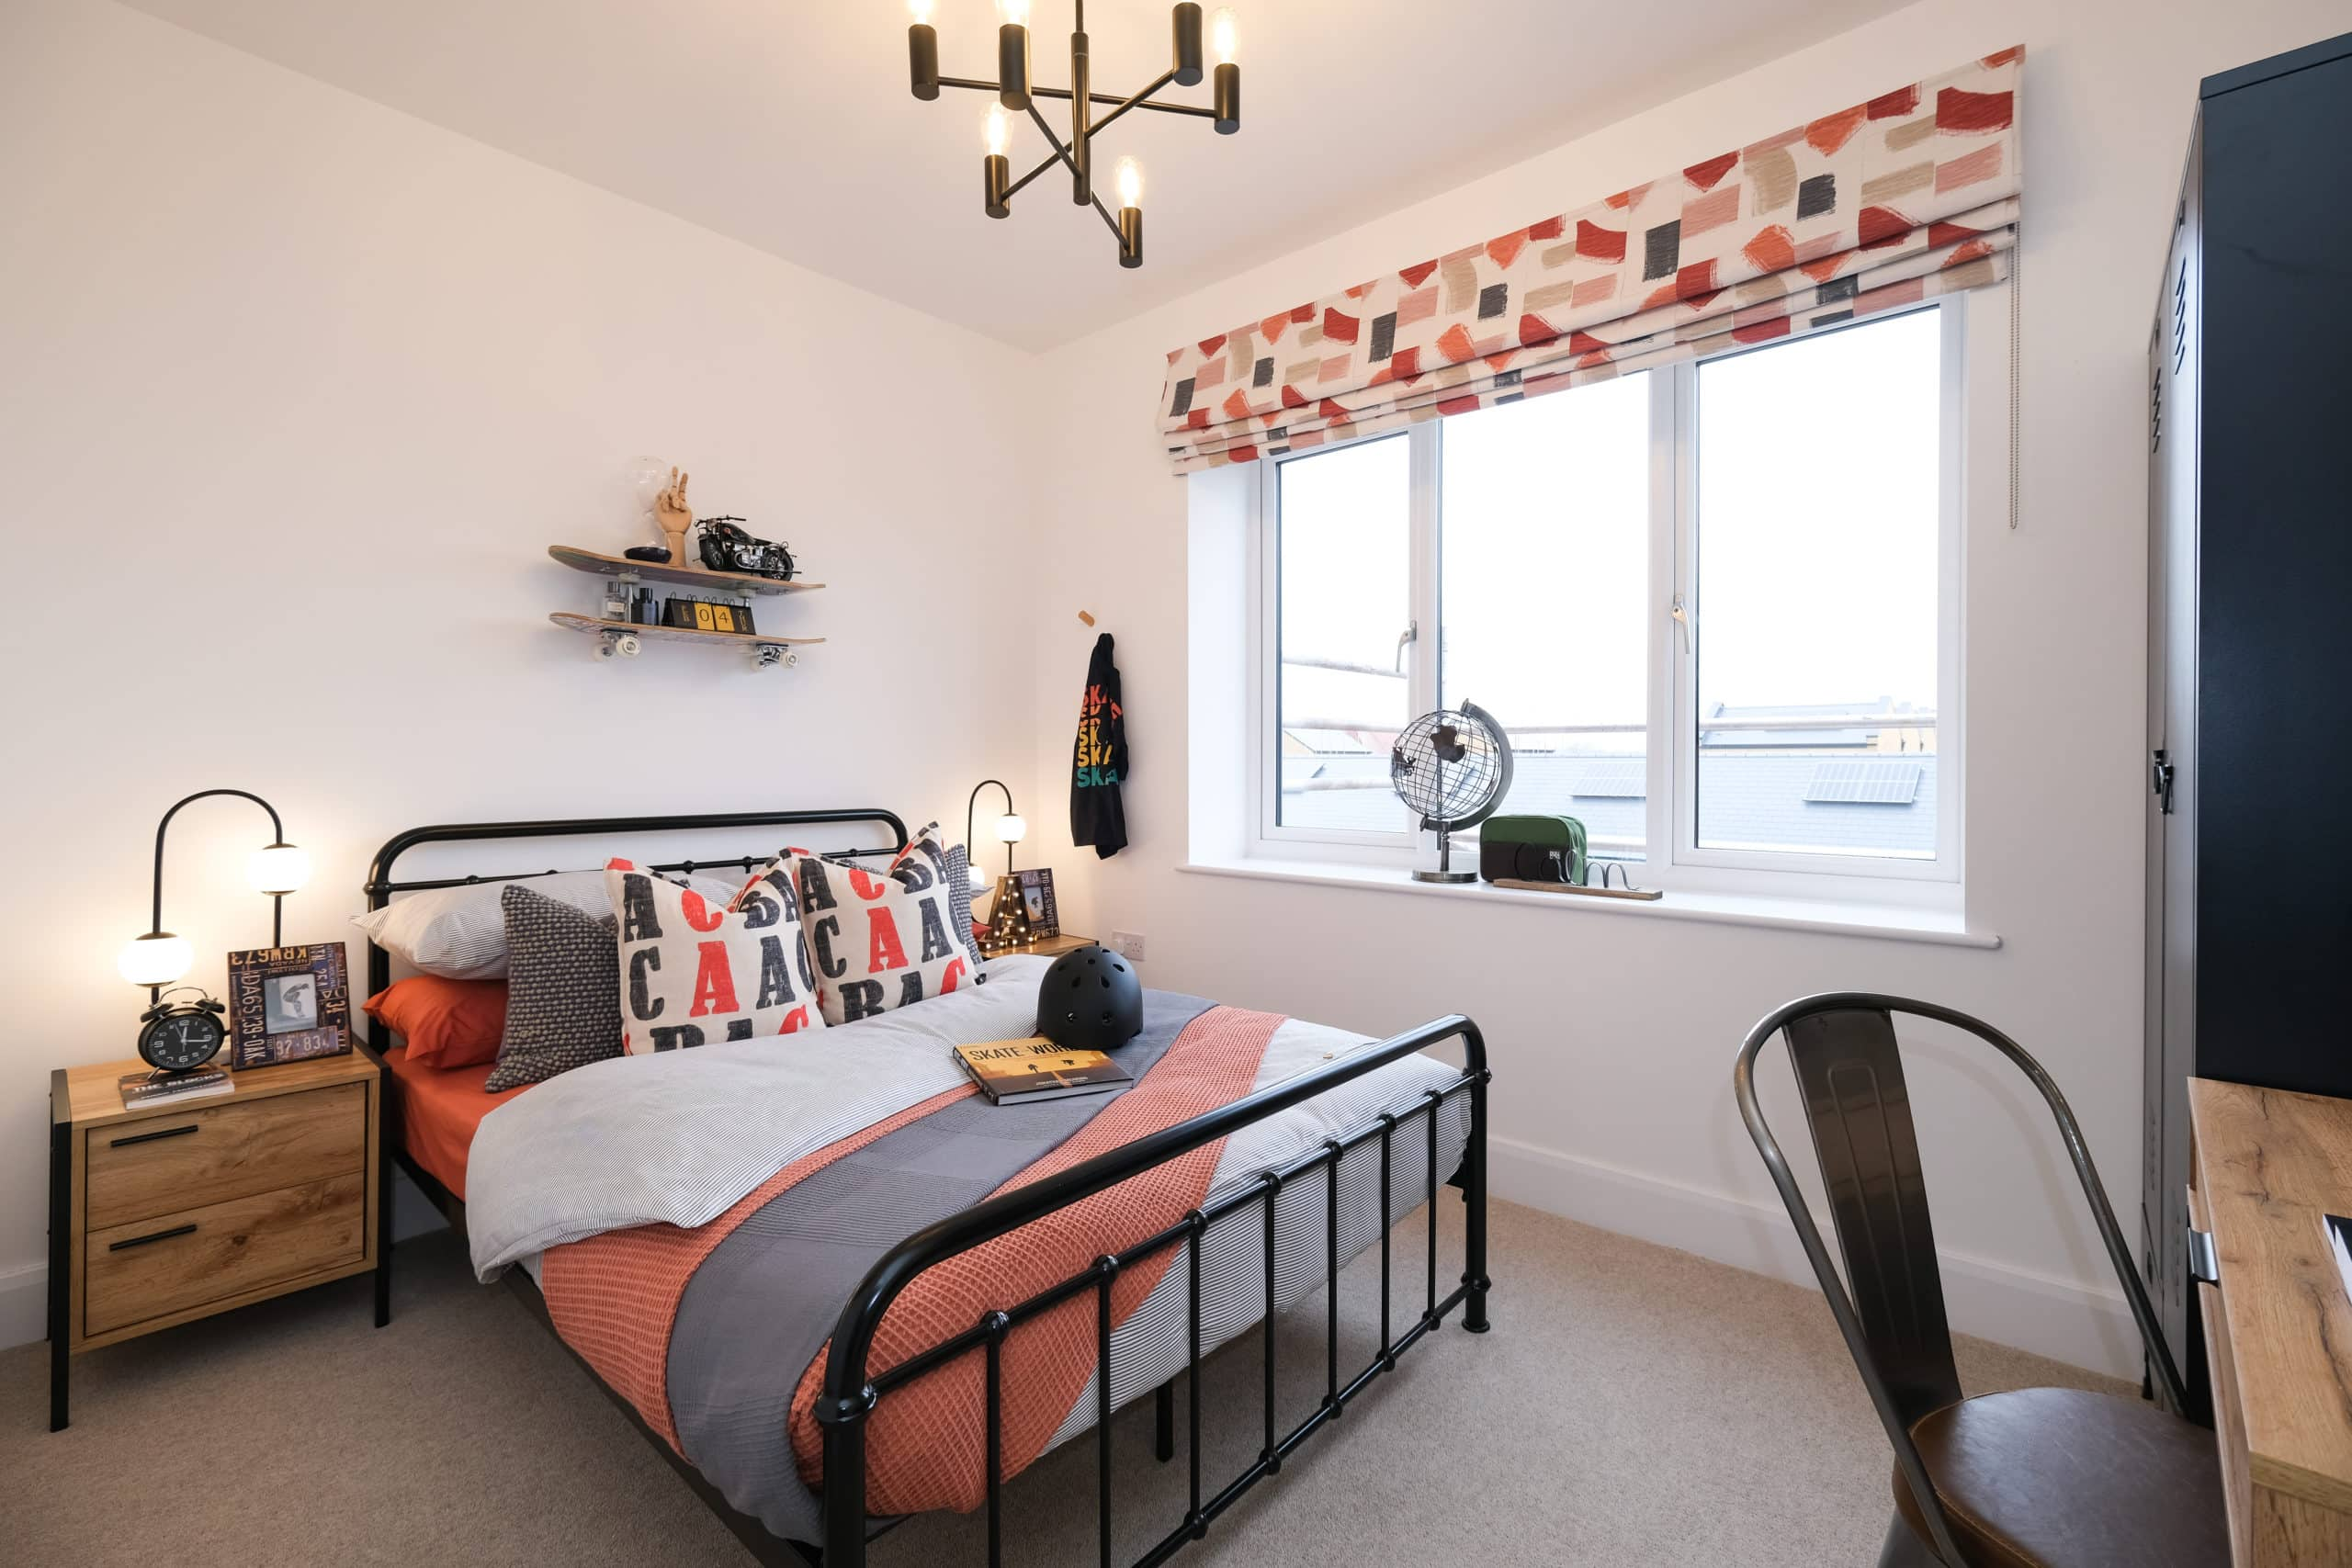 Bedroom two at Catalyst's The Printworks - Shared Ownership homes available on Share to Buy